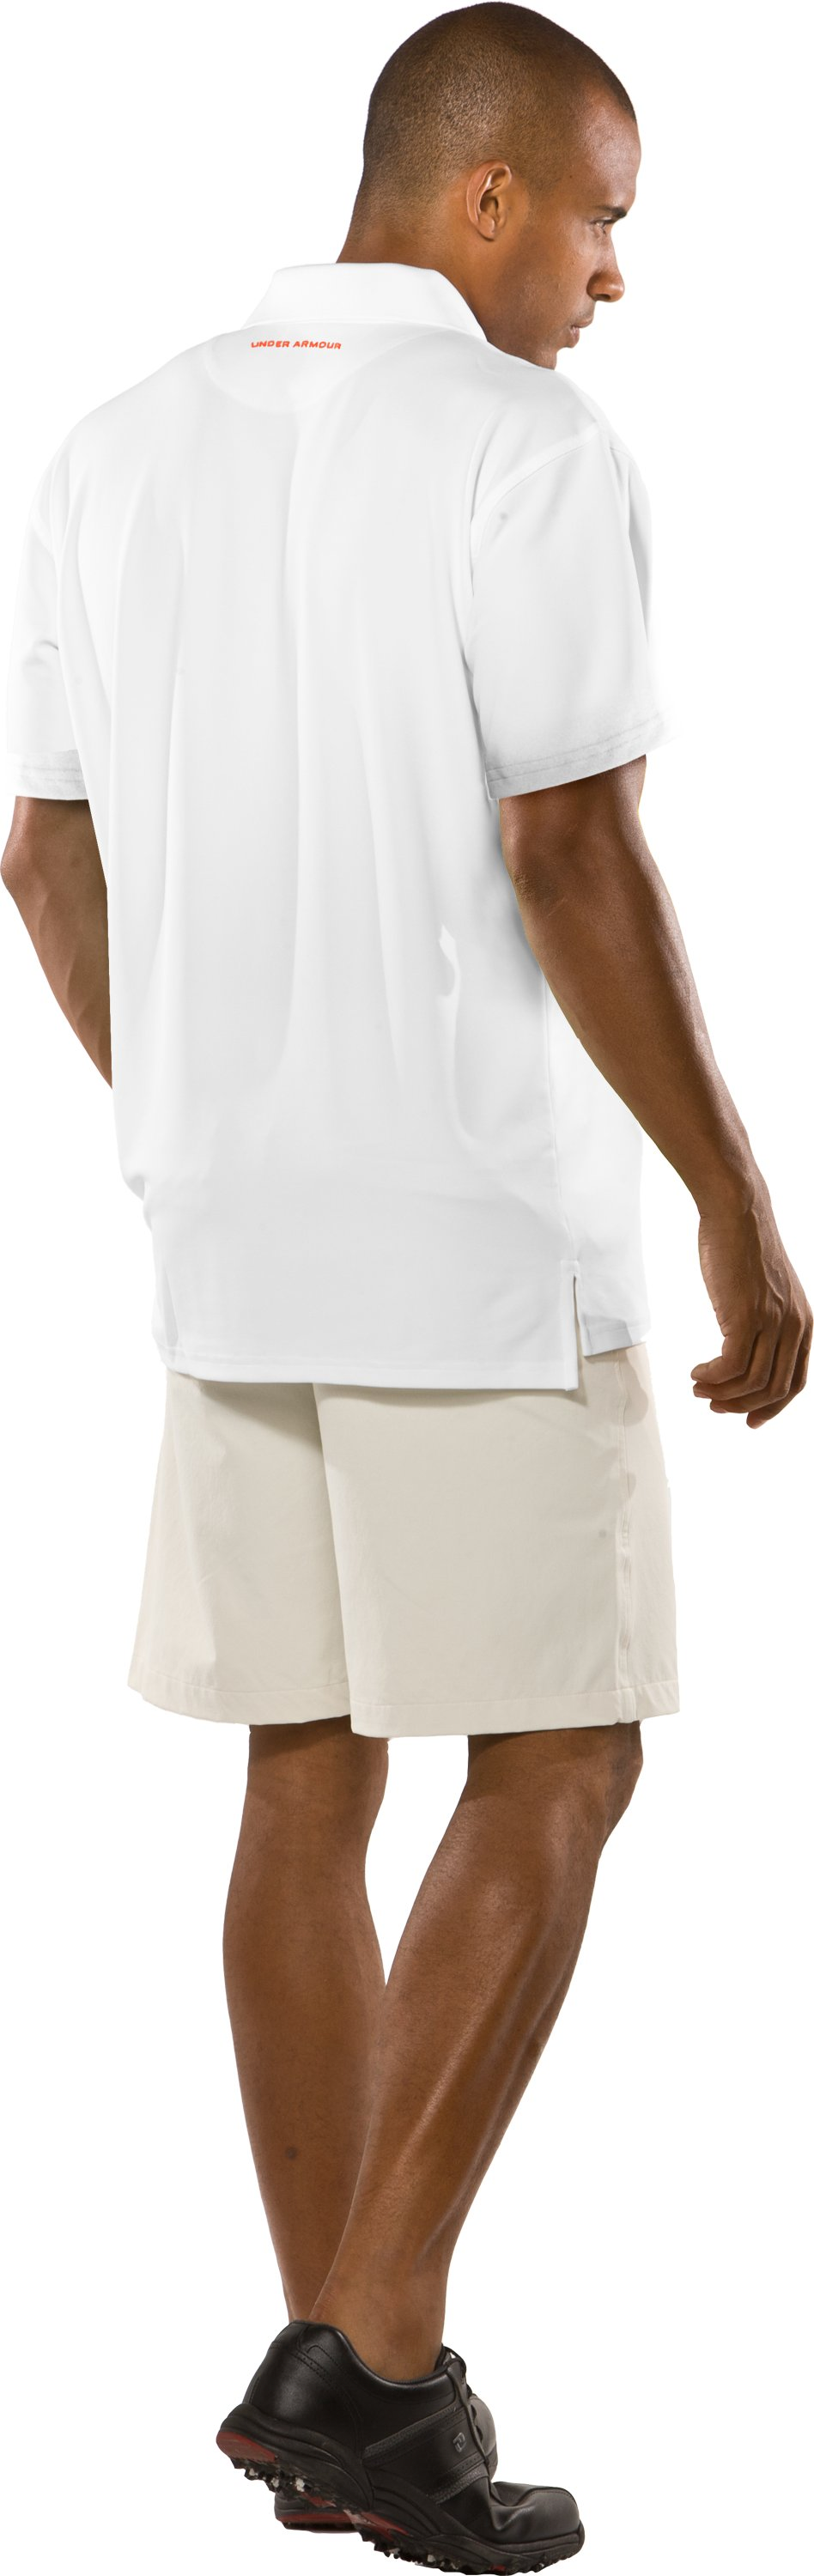 Men's Performance Graphic Polo, White, Back